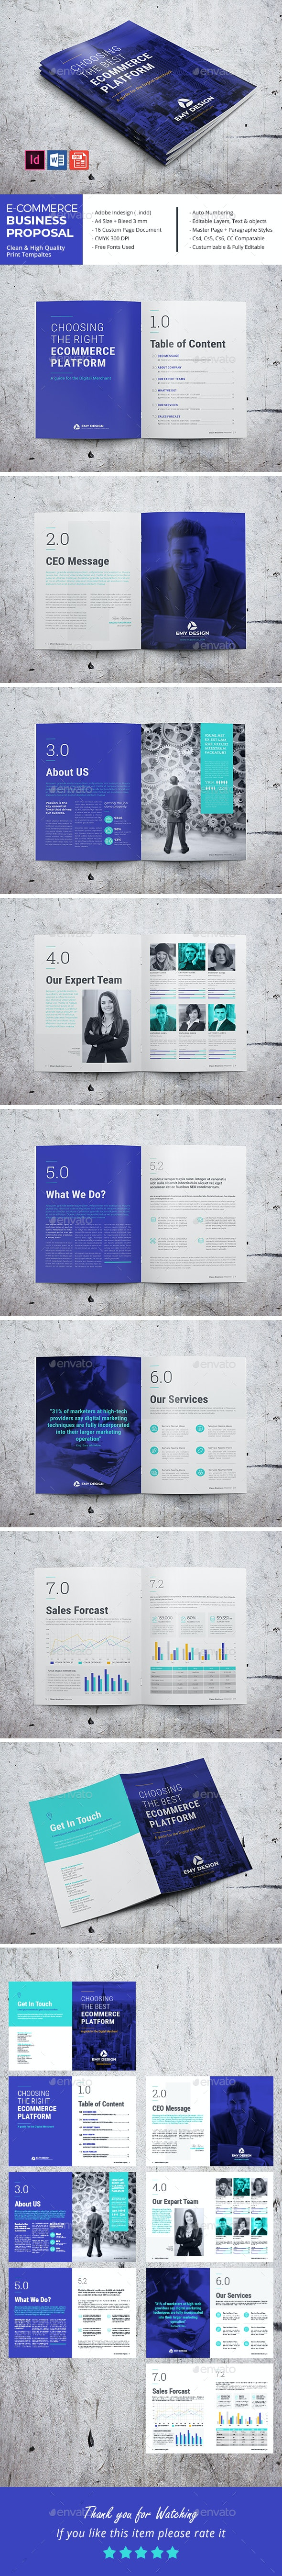 E-Commerce Business Proposal - Corporate Brochures